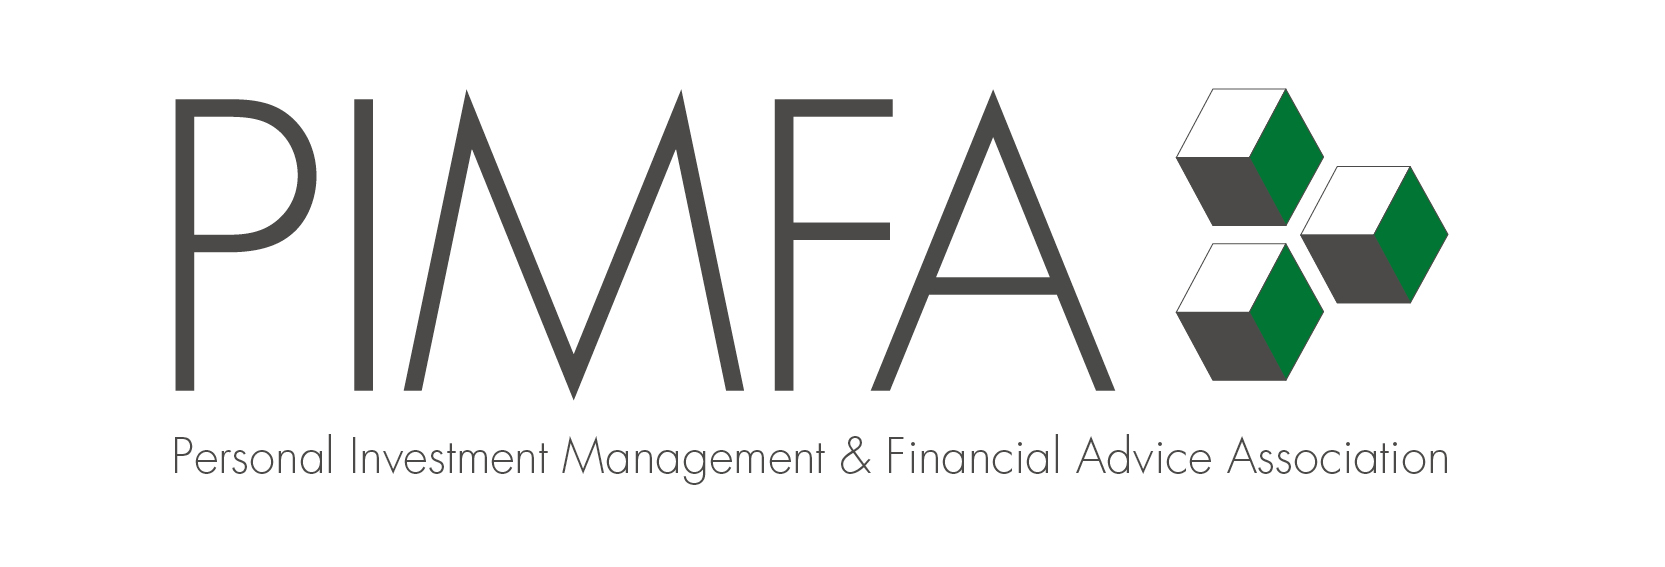 PIMFA Logo - Full Name